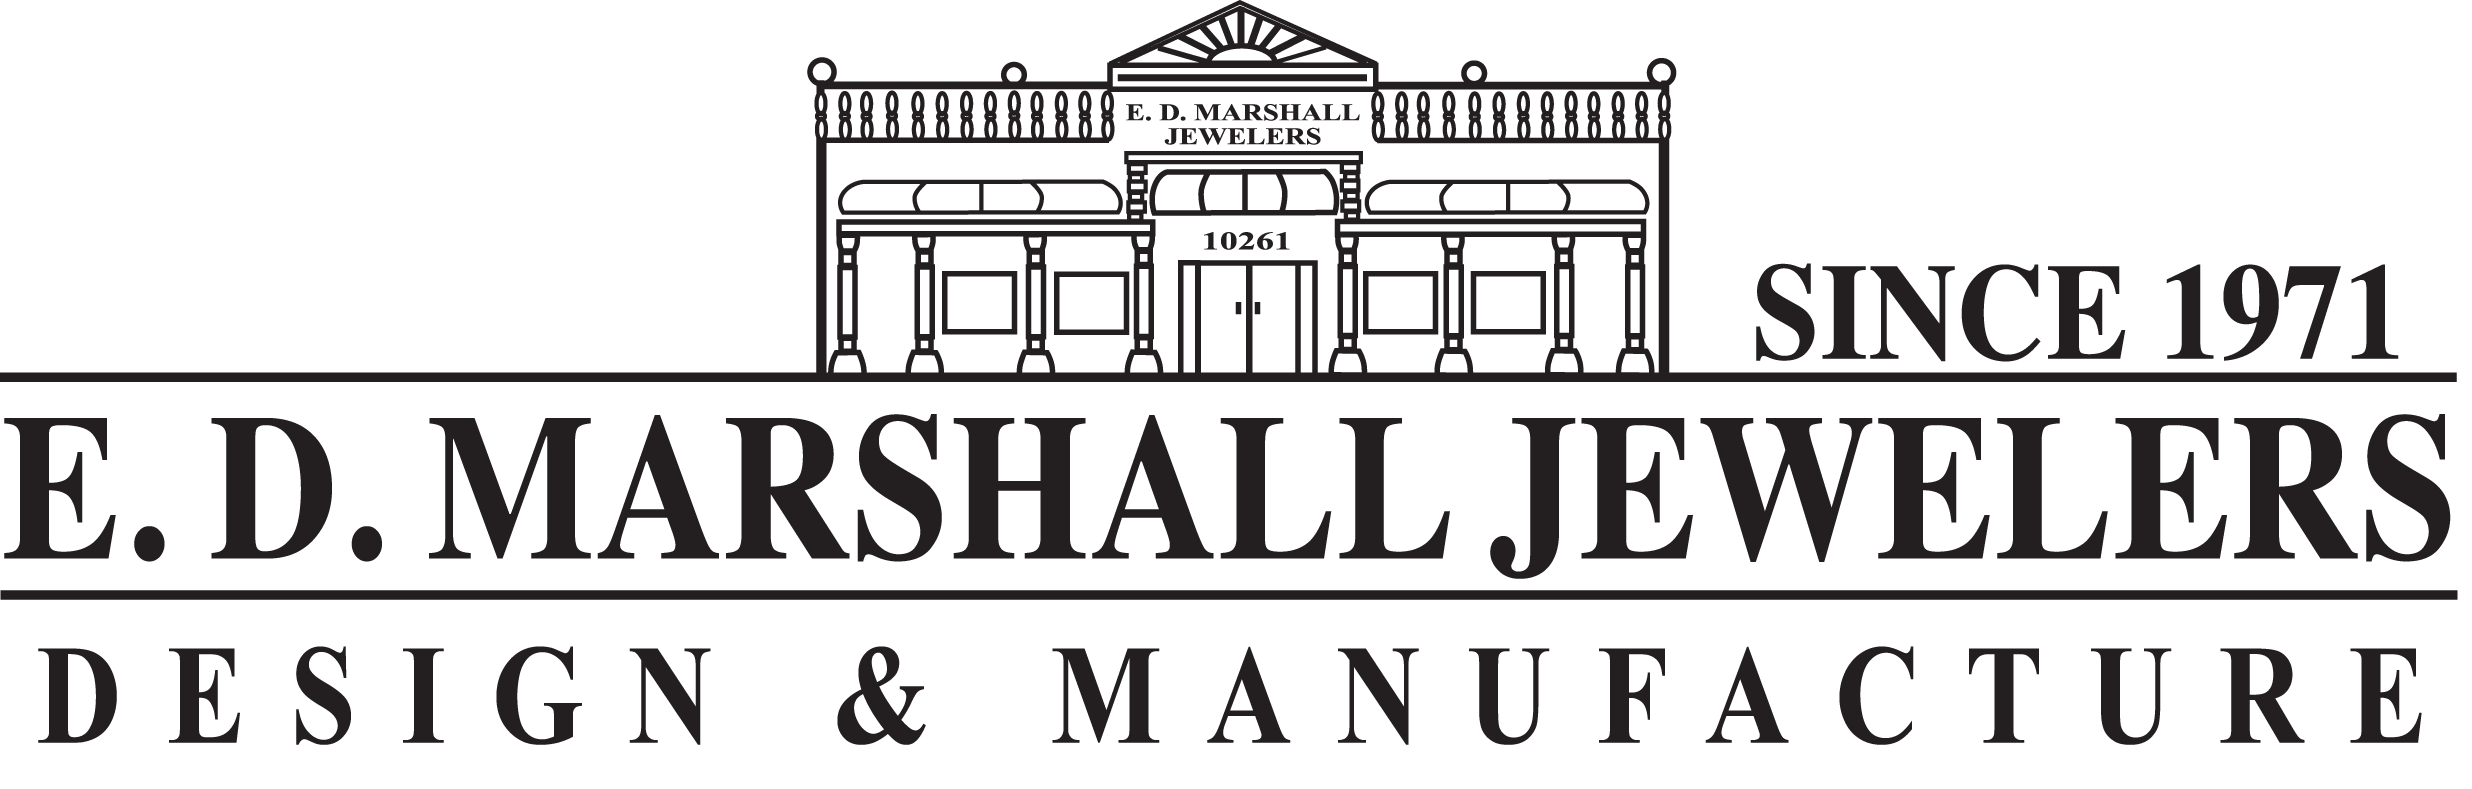 E. D. Marshall Jewelers | Design & Manufacture